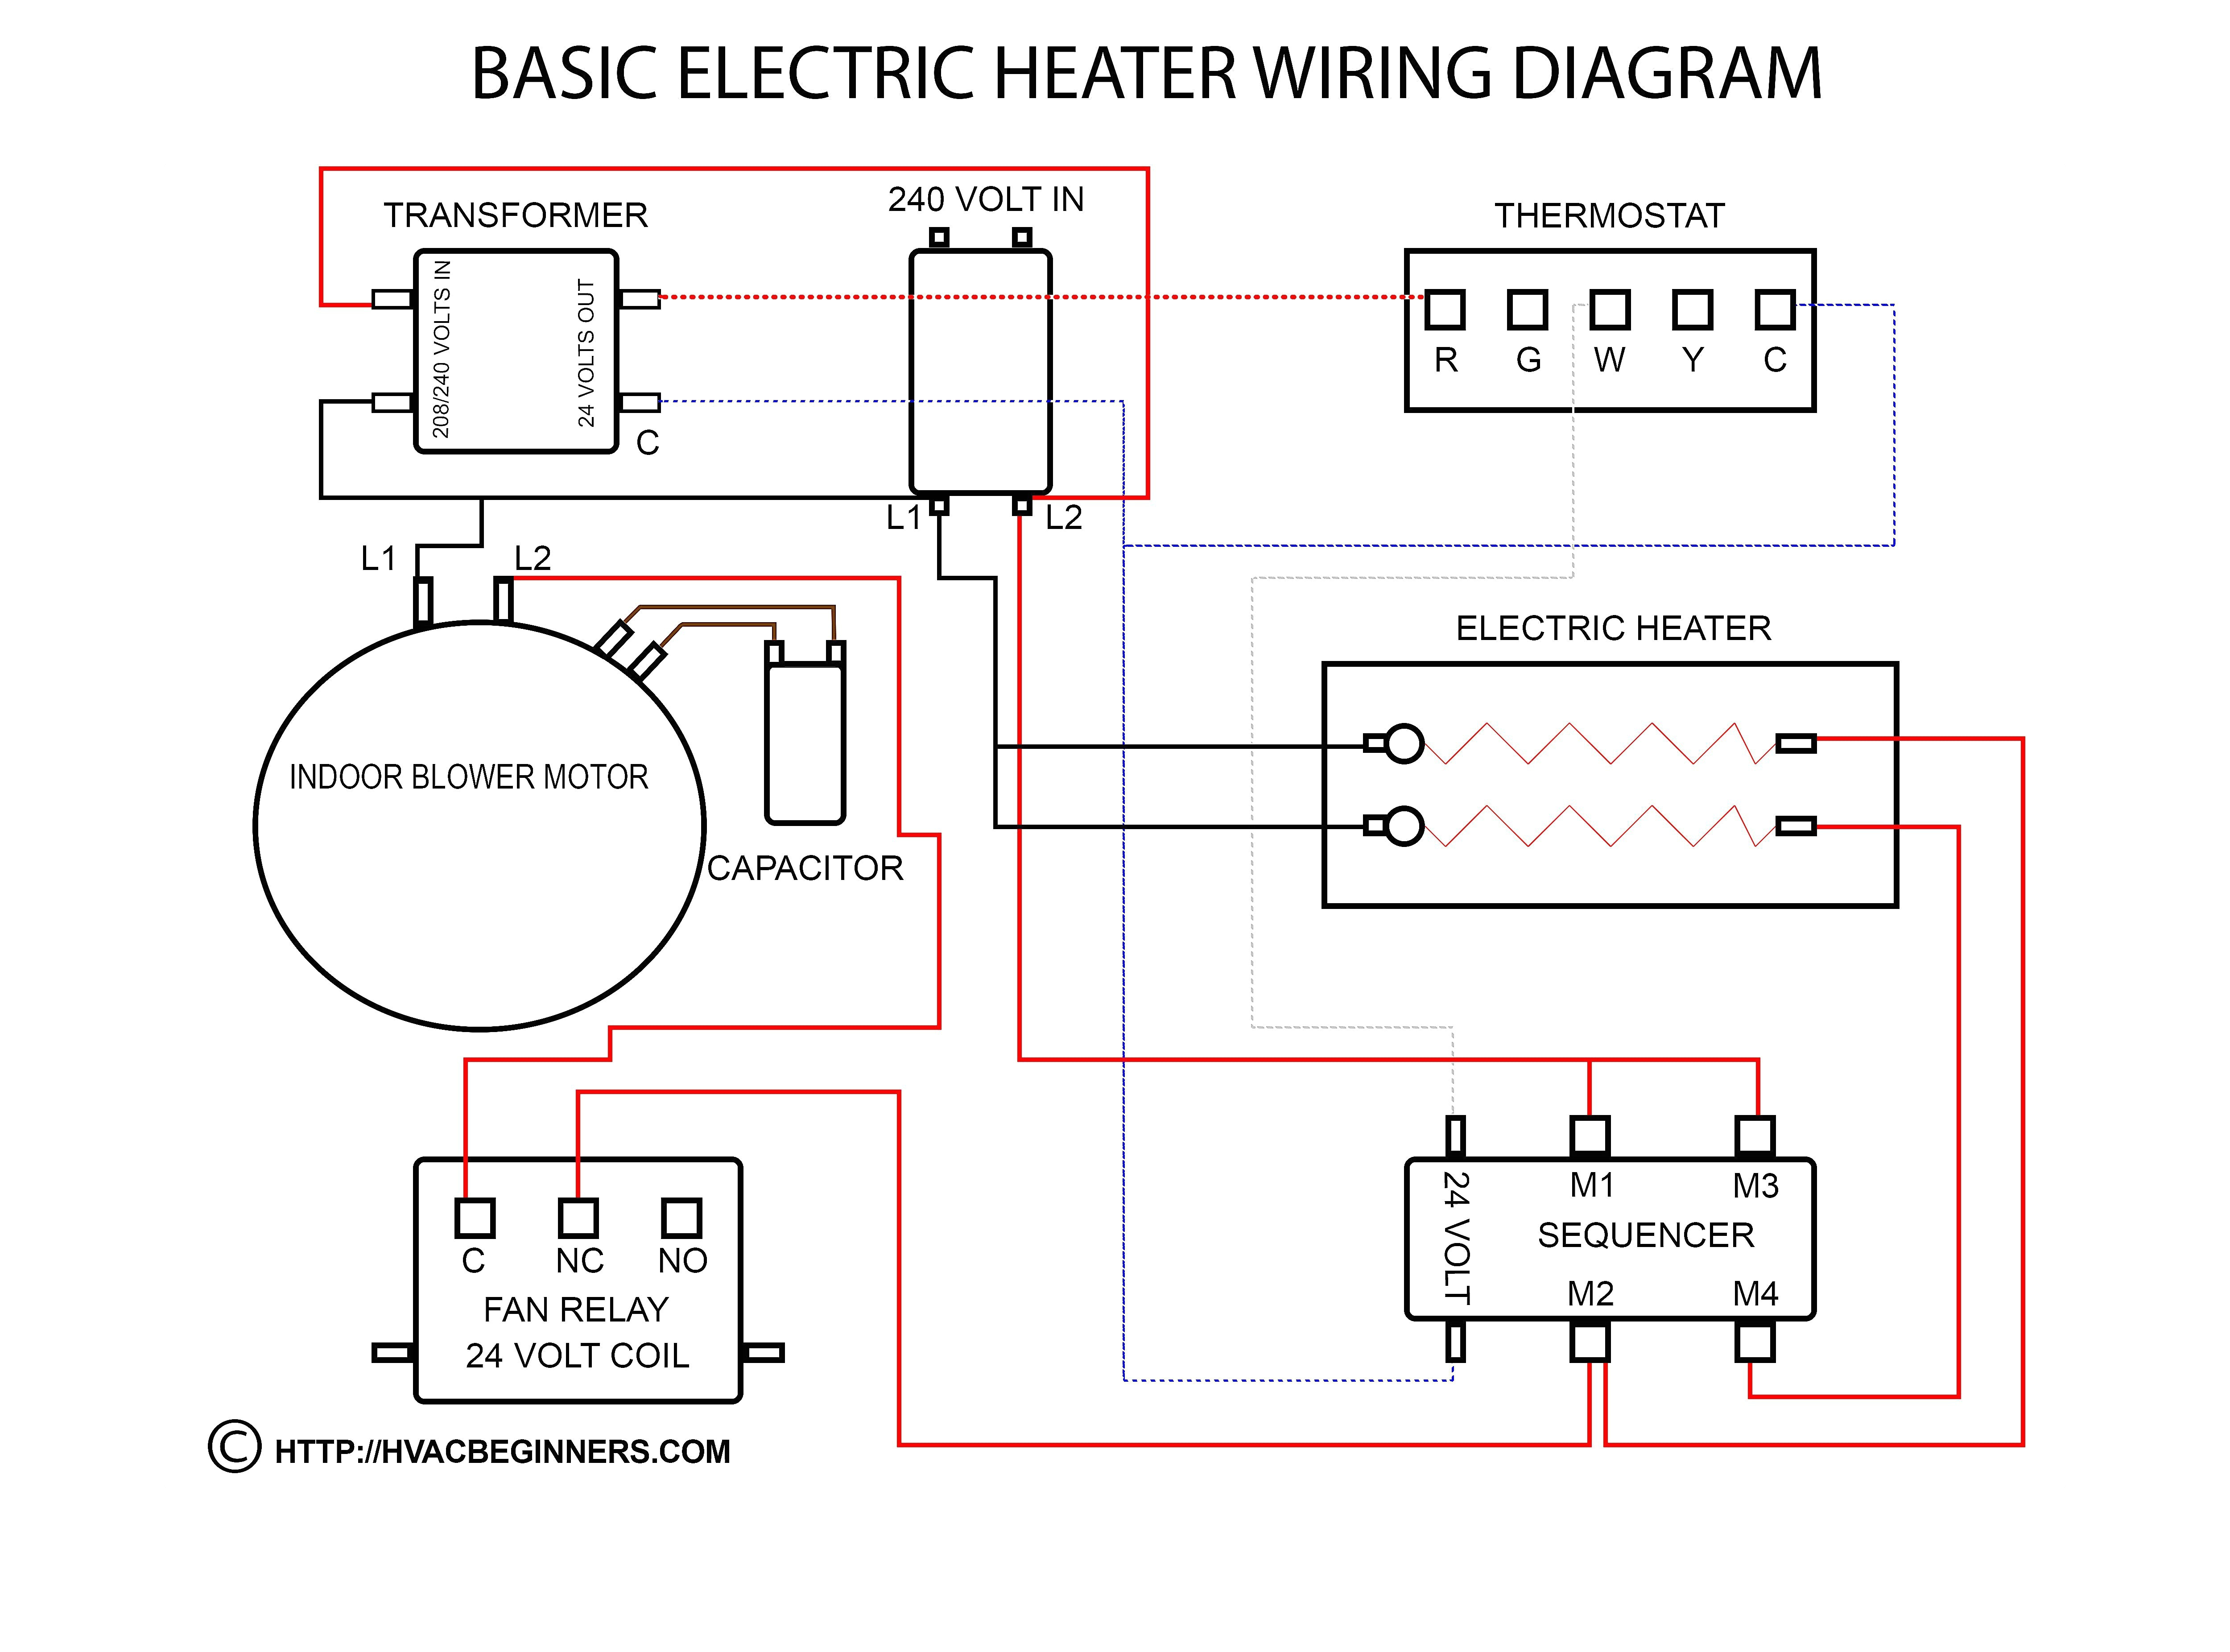 tagged electrical diagram electrical schematic electrical wiring automotive wiring volkswagen tagged circuit diagram electrical circuit search